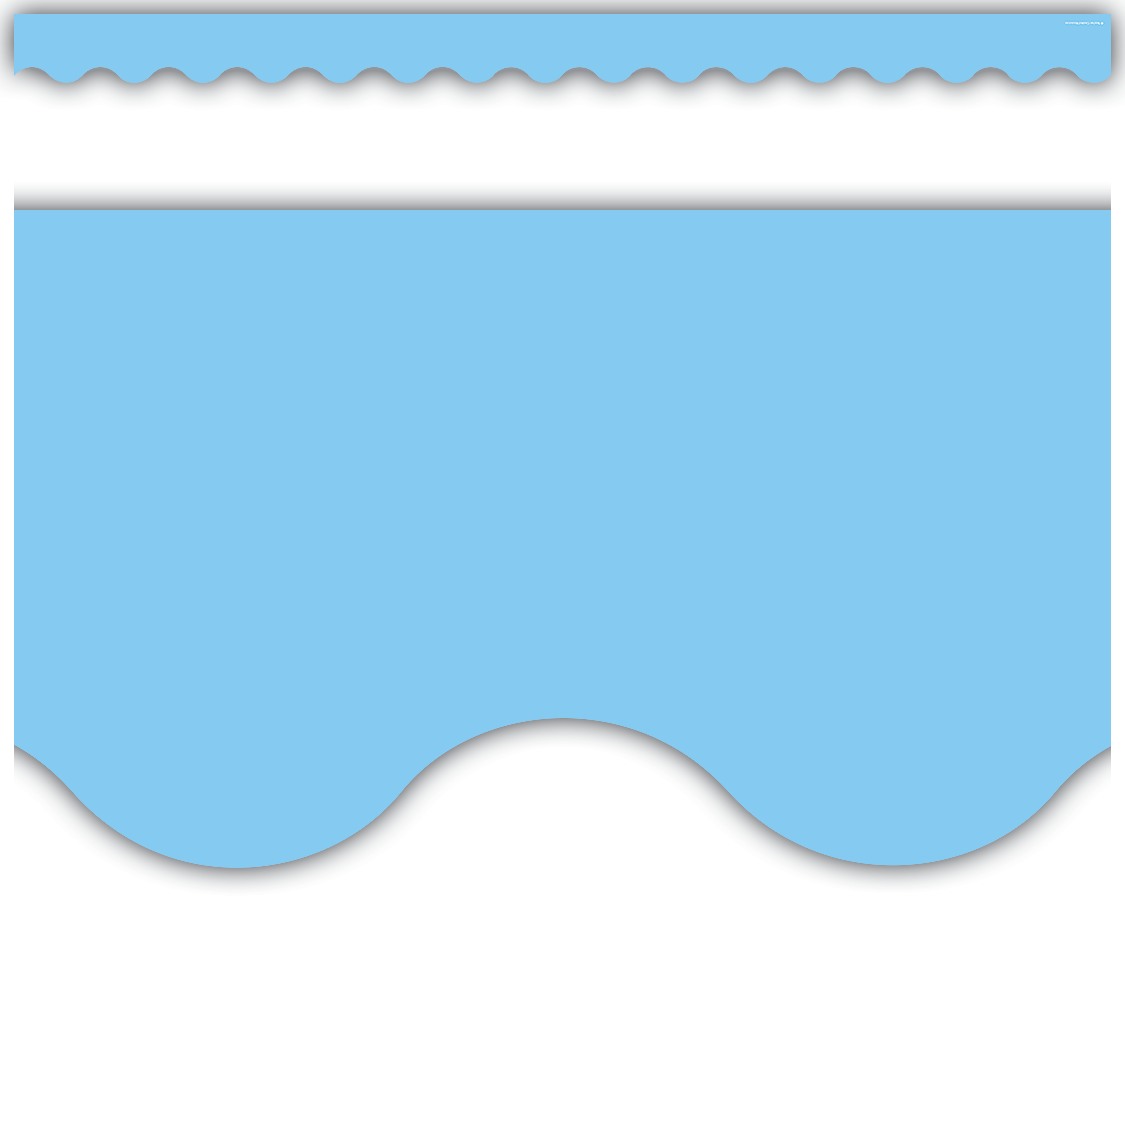 Light Blue Scalloped Border Trim